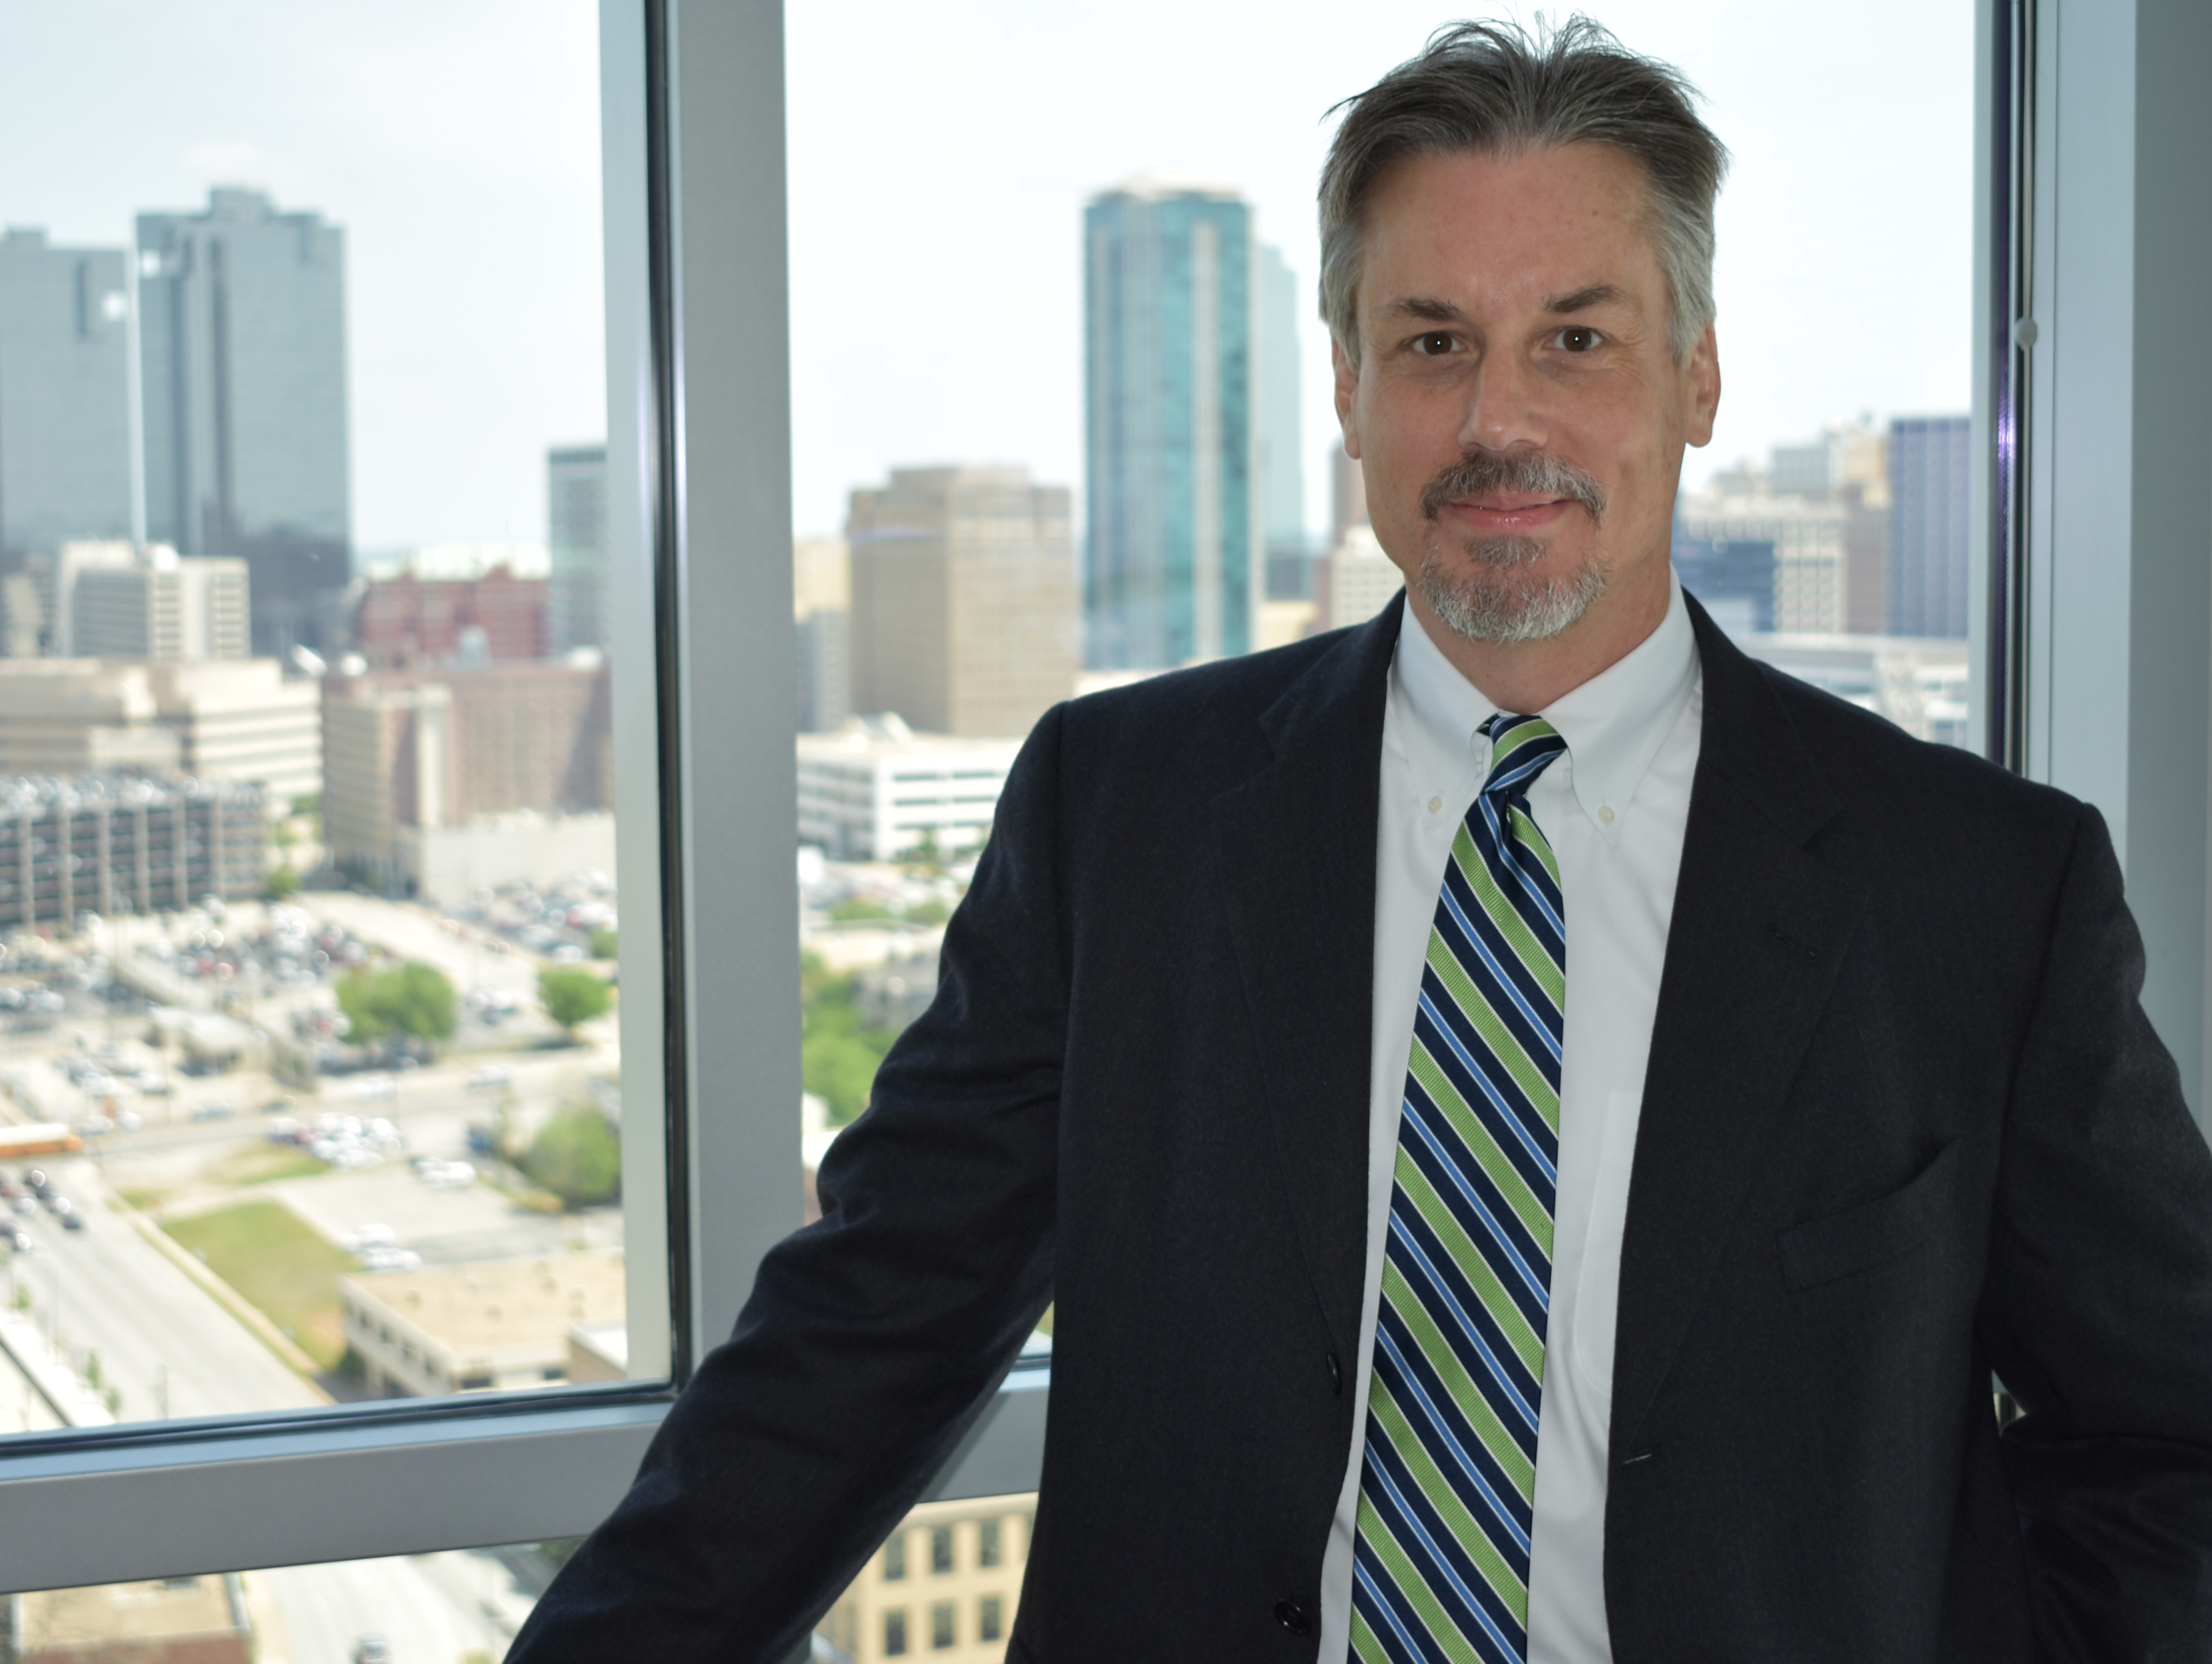 steven j gordon - Mass Torts and Toxic Tort Litigation | Practice Area | DFW